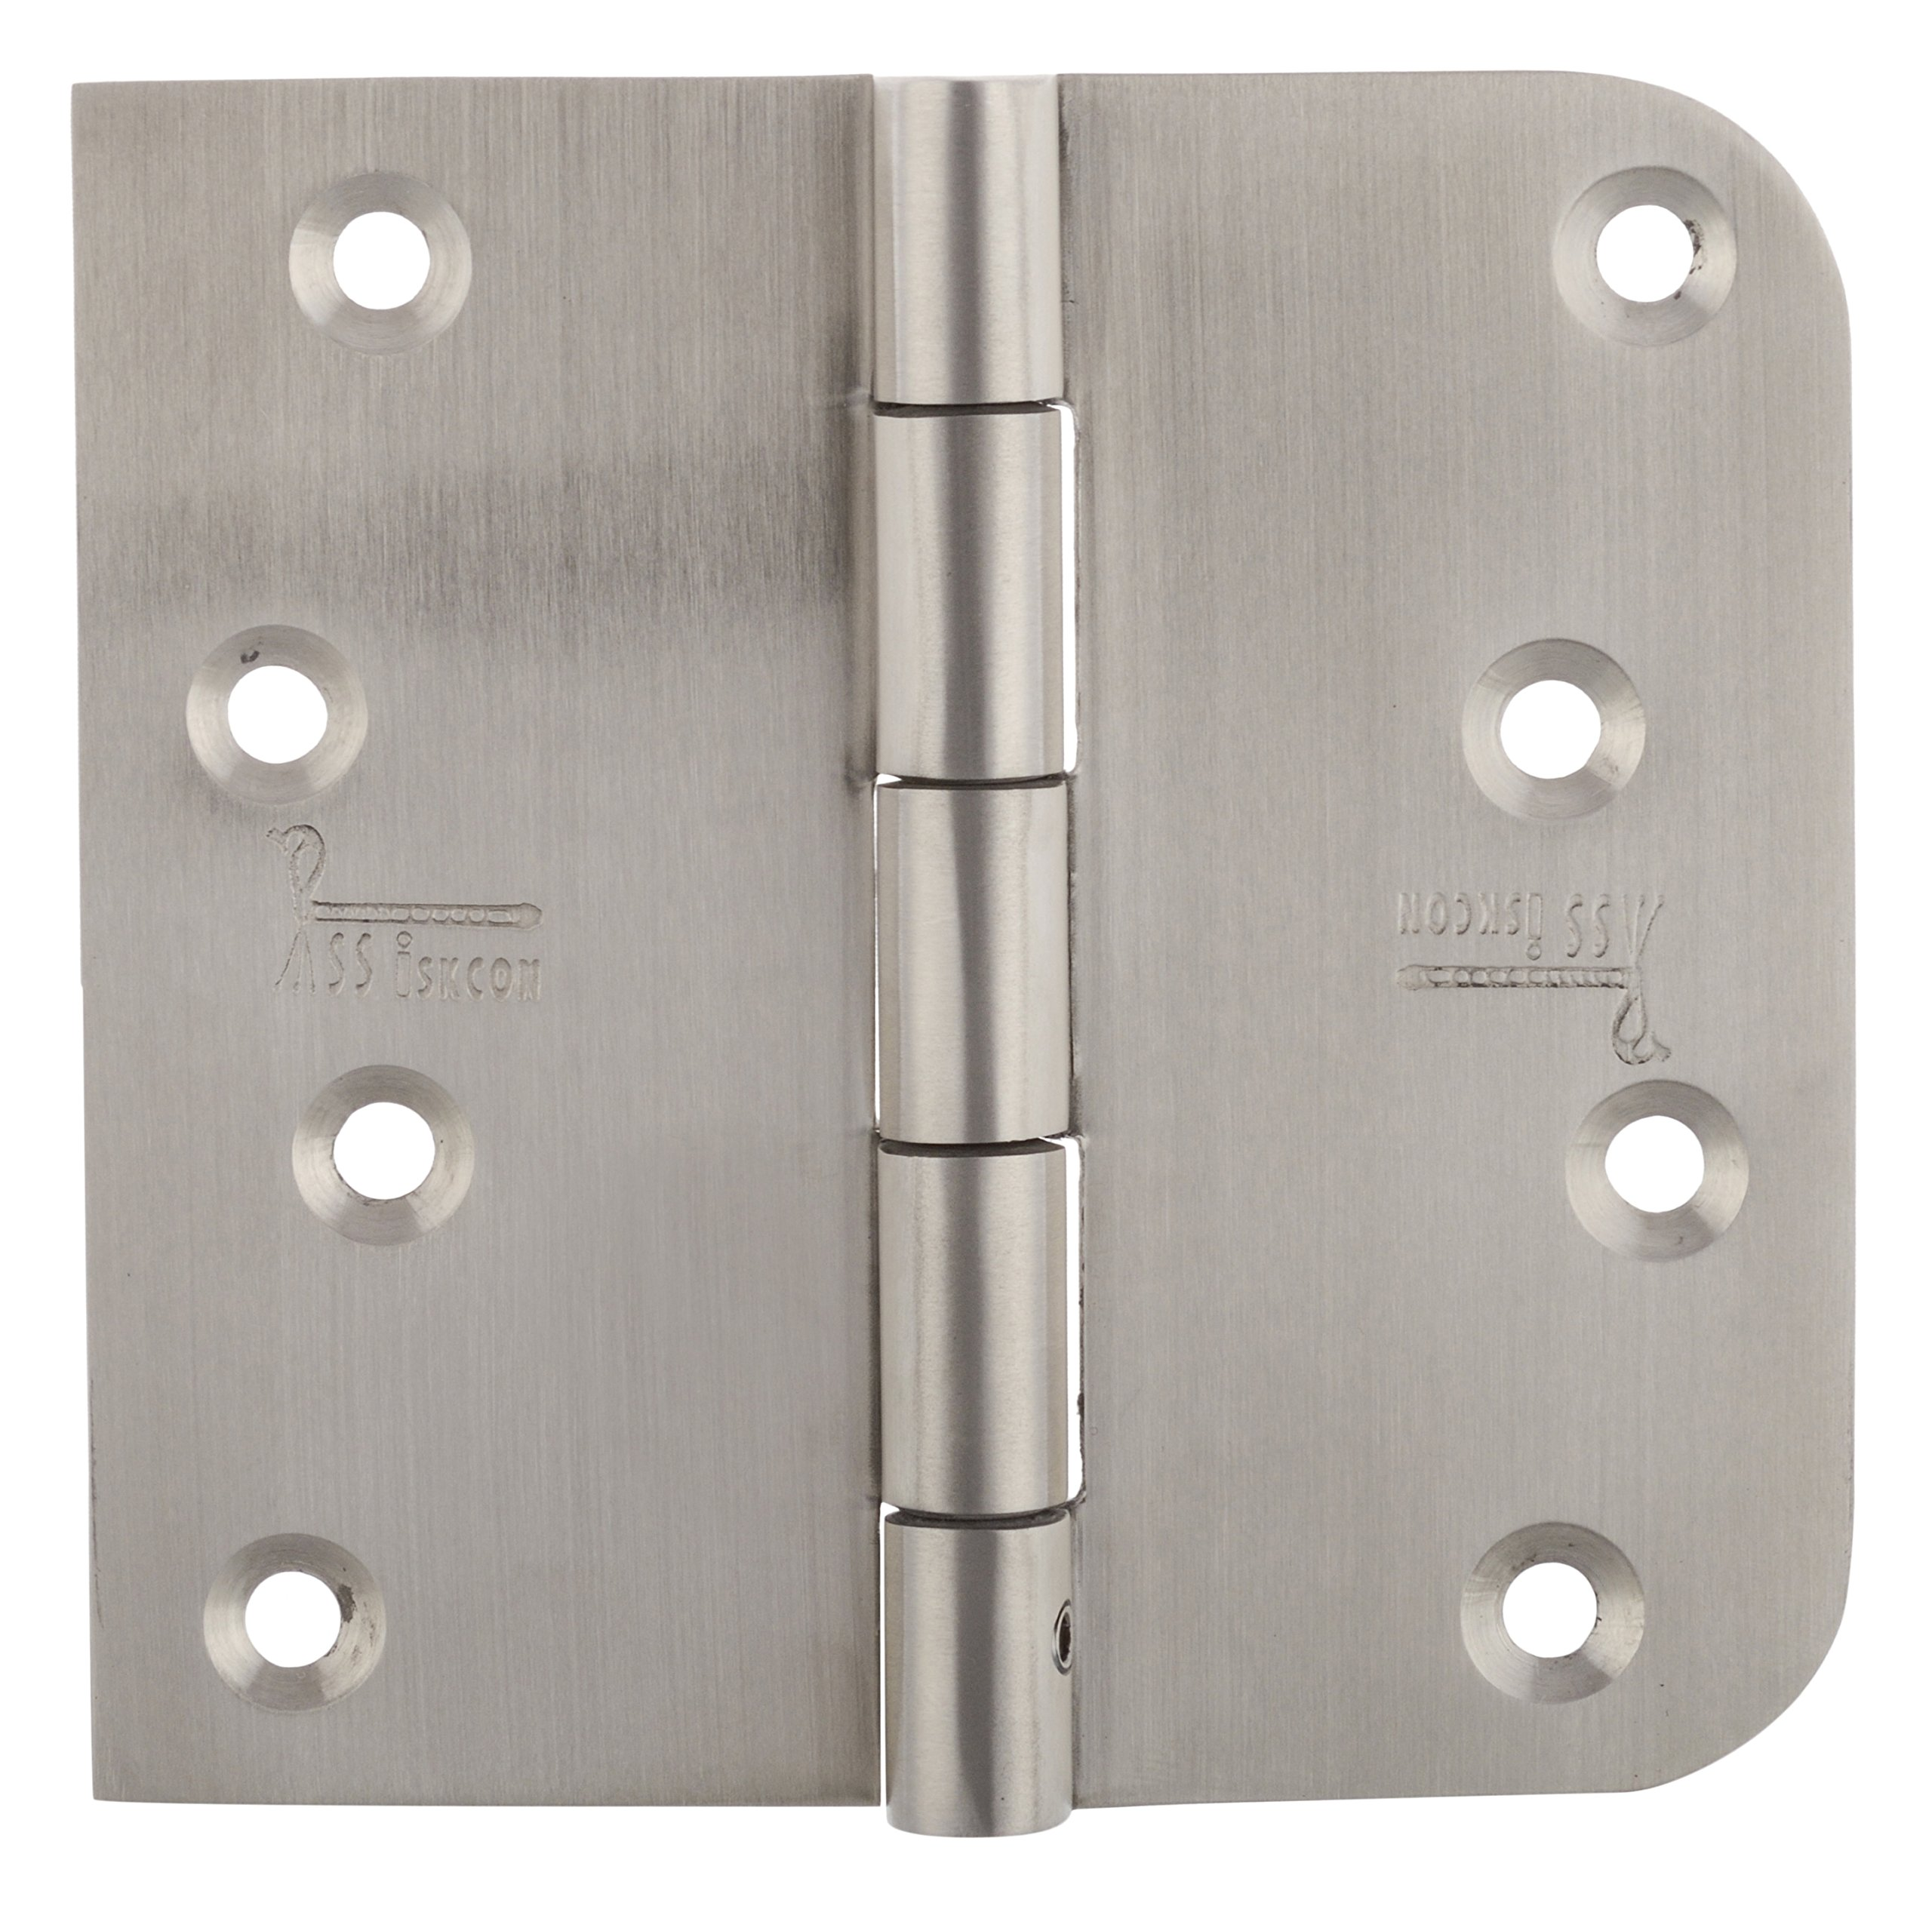 DOOR HINGES 3 PCS 4 INCH SQUARE 5/8 RADIUS SATIN FINISH 32D RESIDENTIAL DOORS WITH SECURITY PIN NRP REVERSIBLE TECHNIC WITH SELF DRILLING SCREWS